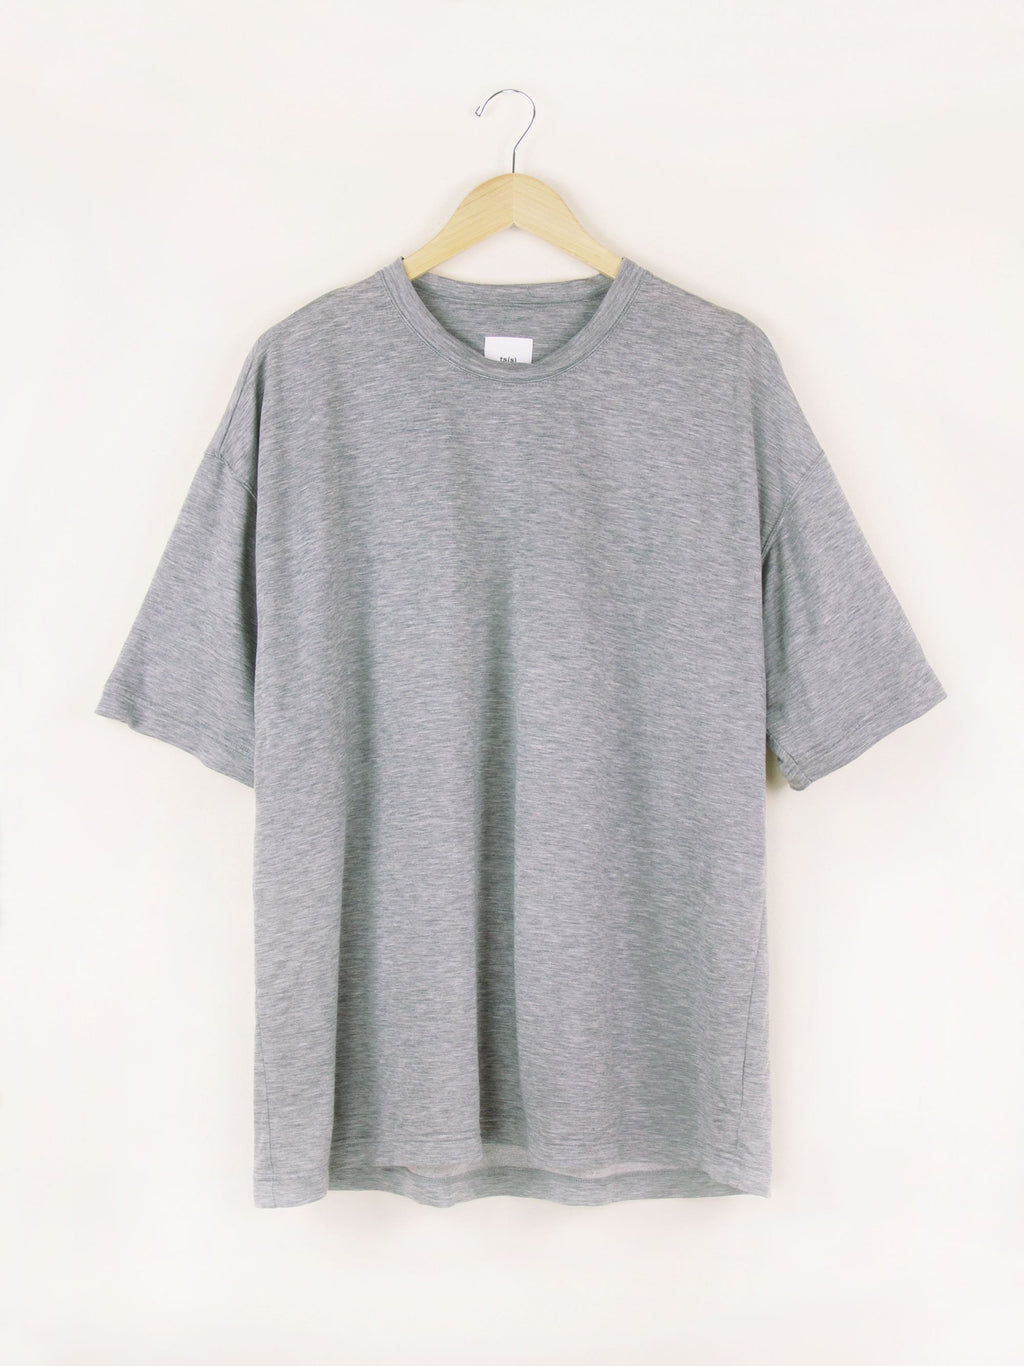 Namu Shop - ts(s) Super Soft Oversized T-Shirt